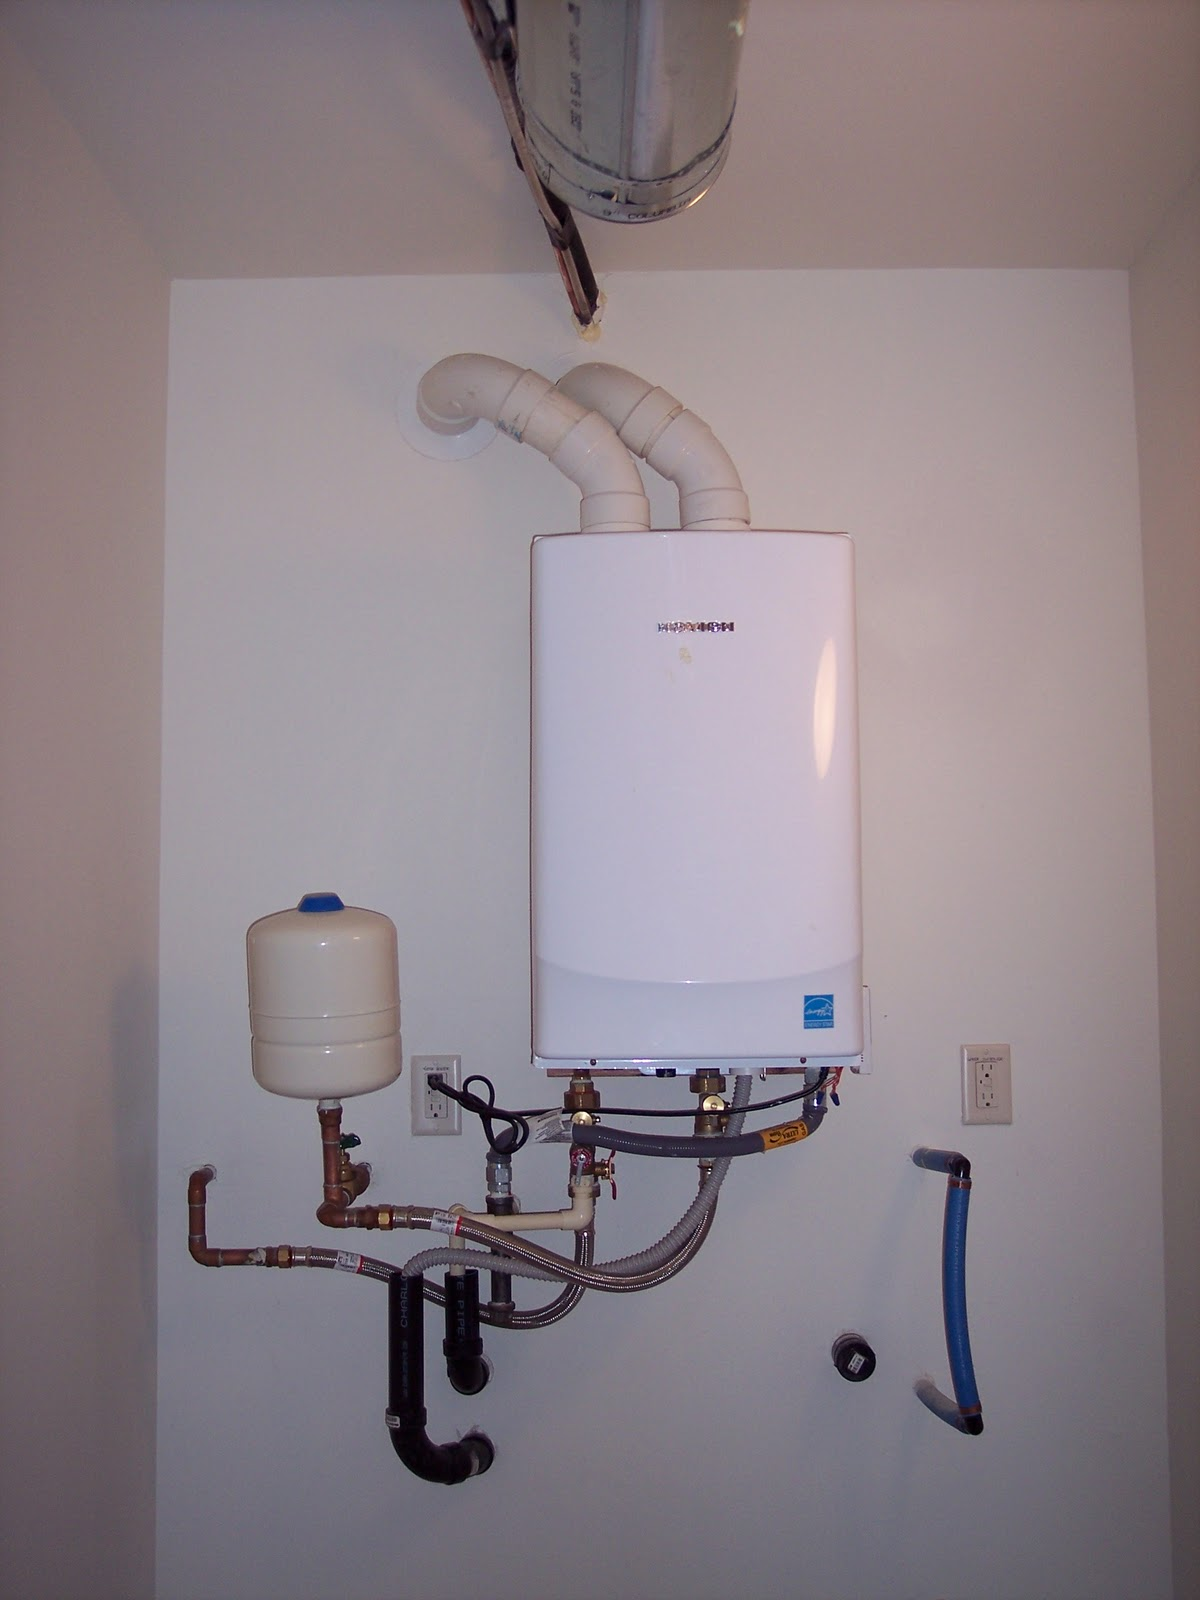 Navien Tankless Water Heater Venting : Building a home water collecting under wall below navien